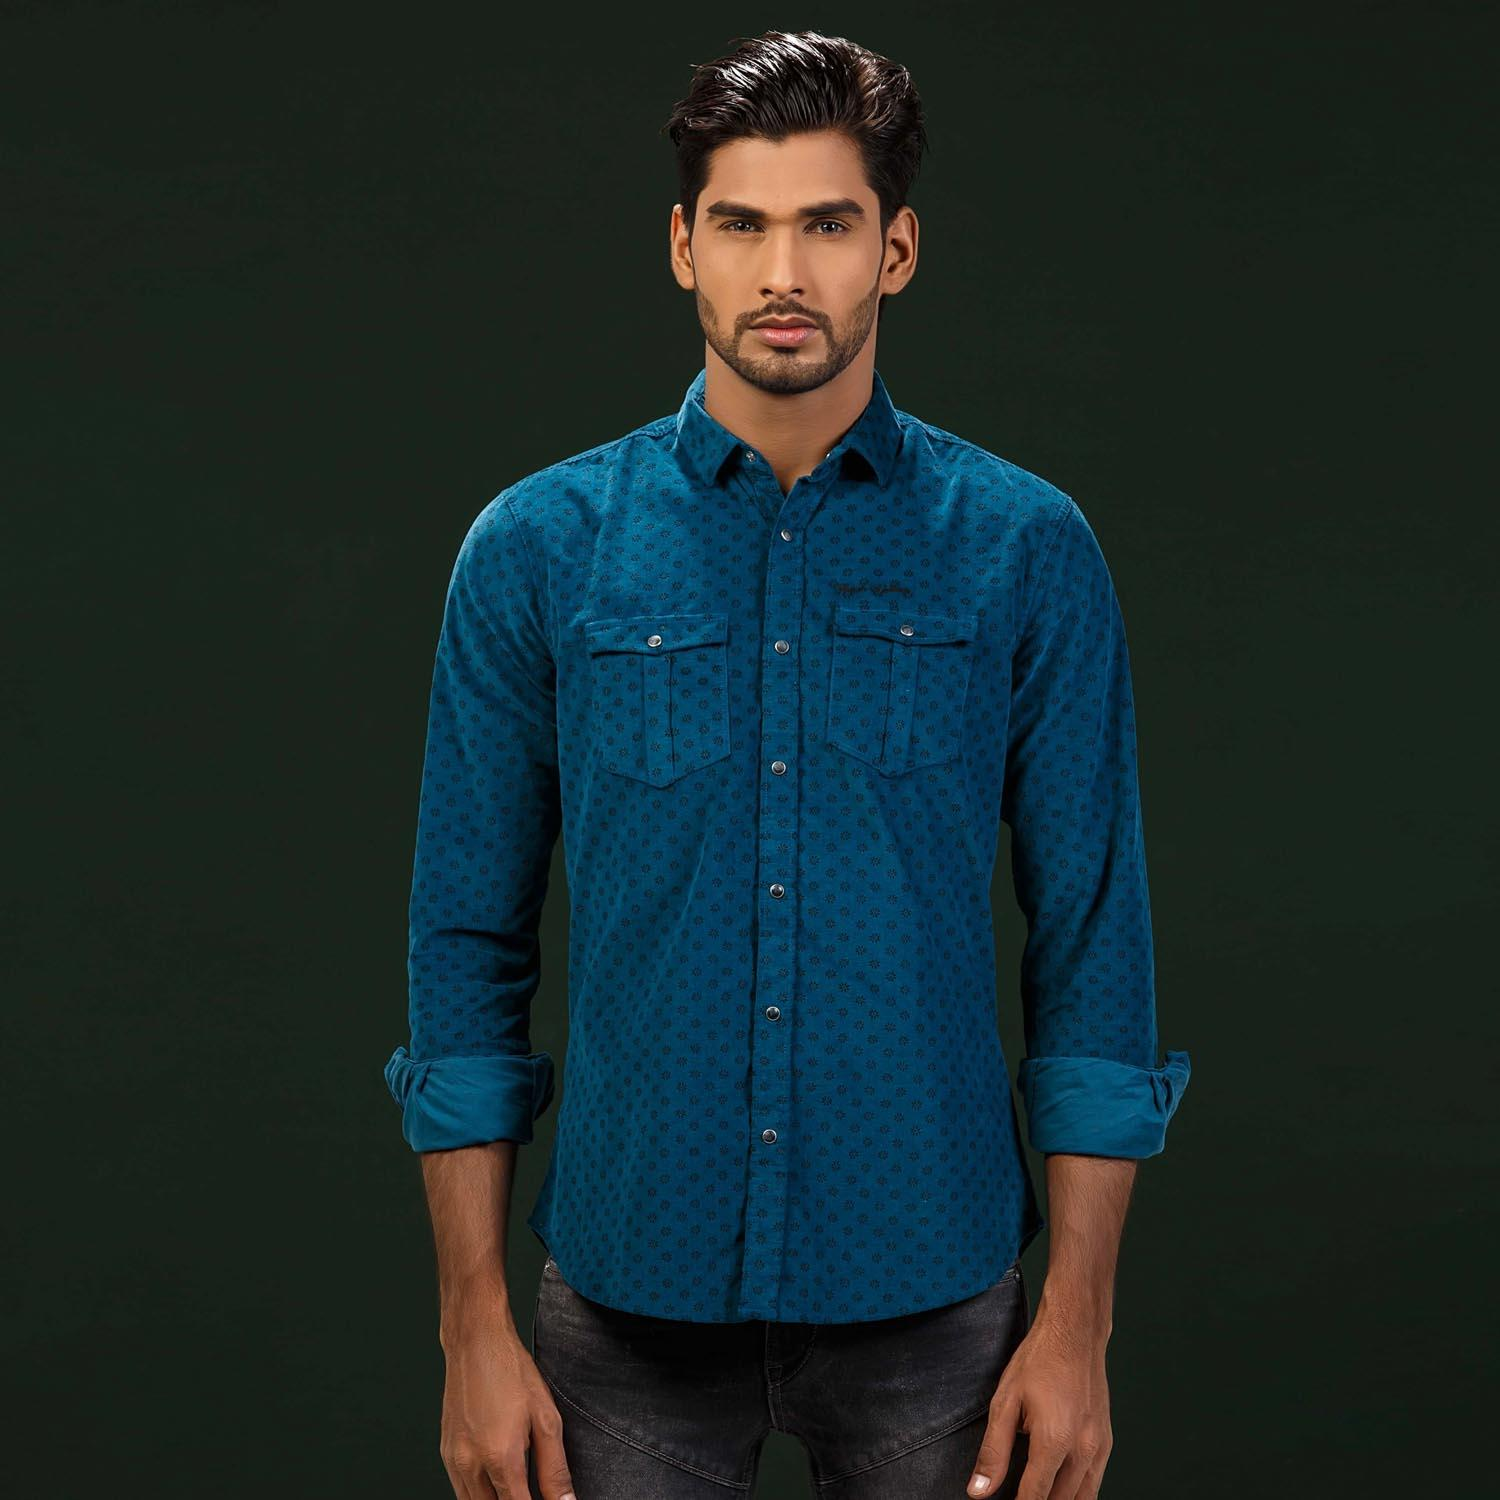 Blue All-Over Printed Classic Corduroy Shirt